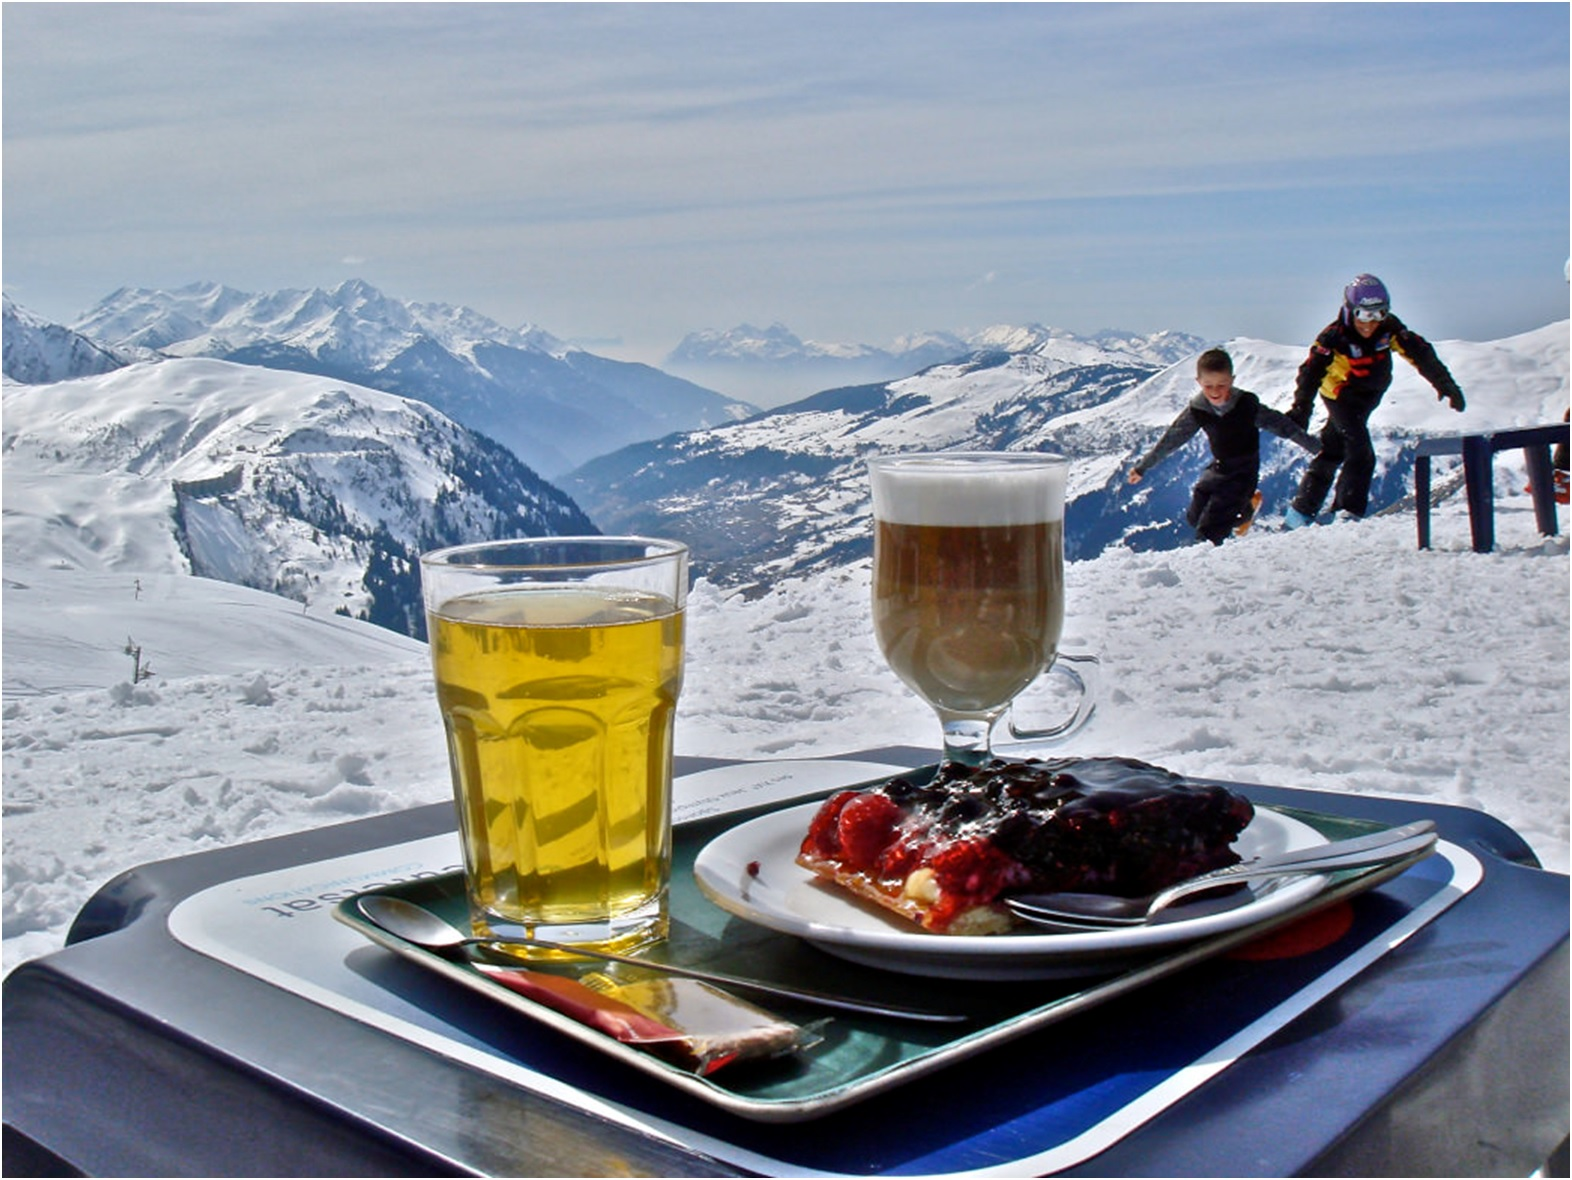 image__header__skiing-in-the-french-alps-how-to-actually-make-it-happen__rootsrated2jpg